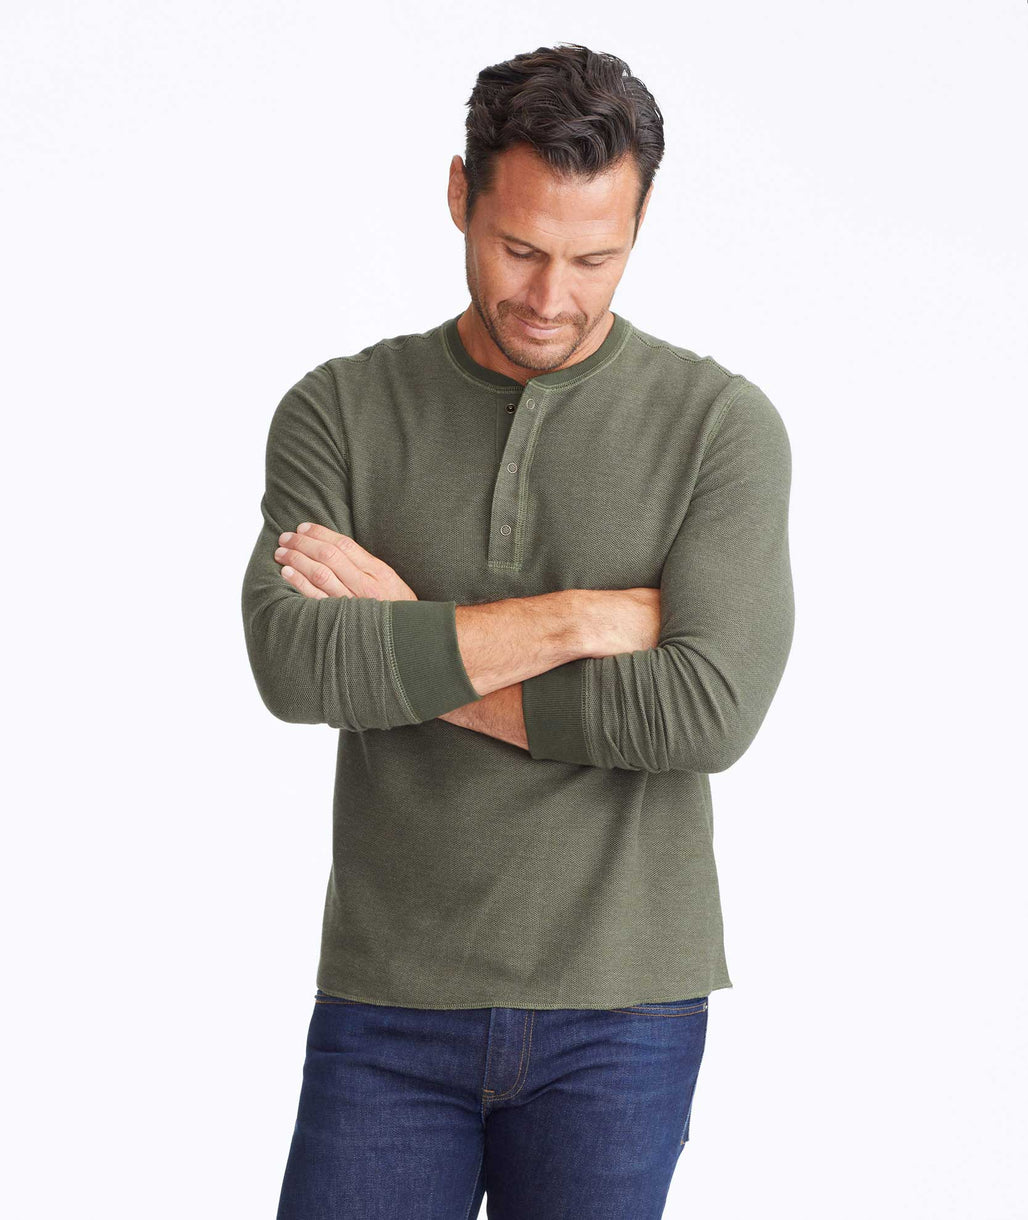 Model wearing a Dark Green Textured Long-Sleeve Henley